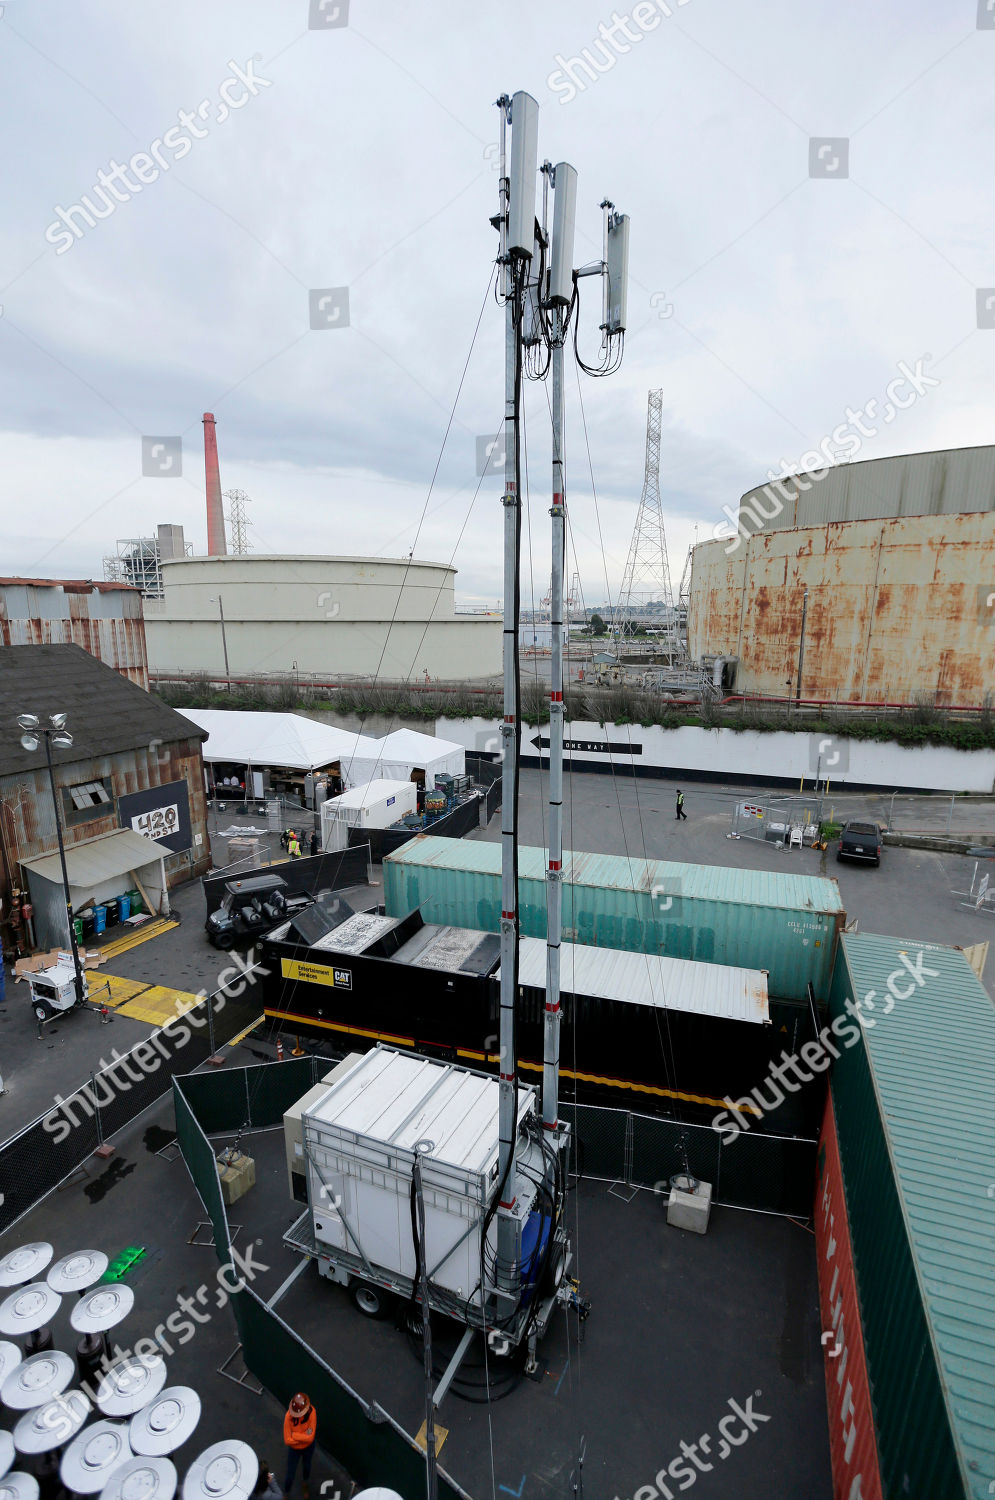 temporary cellular antenna rises alongside warehouse where Editorial